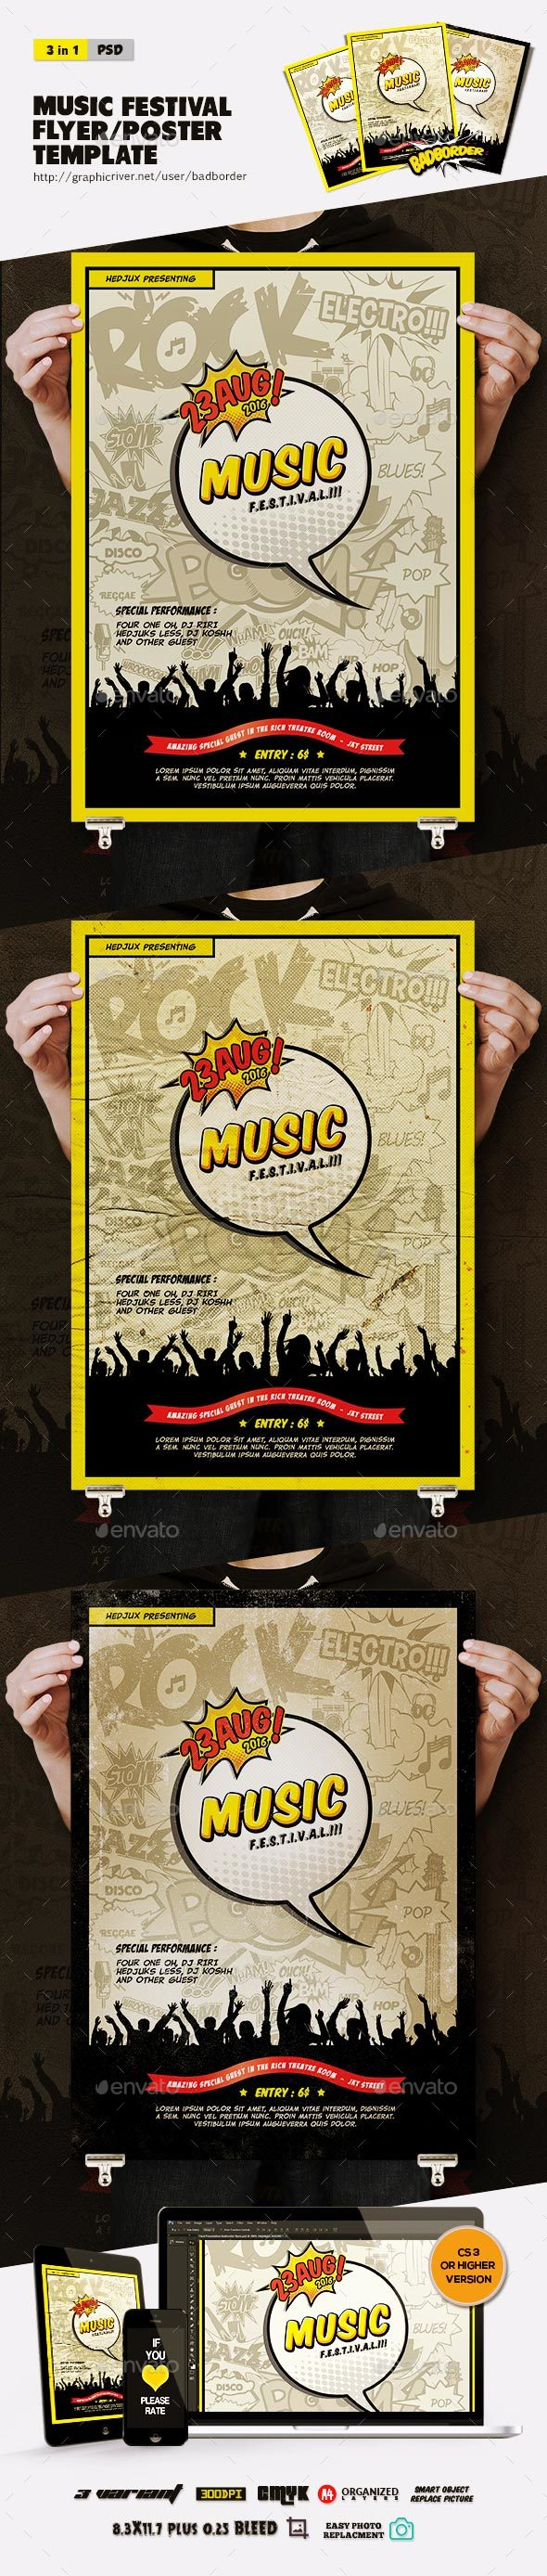 Music Festival Flyer/Poster - Concerts Events